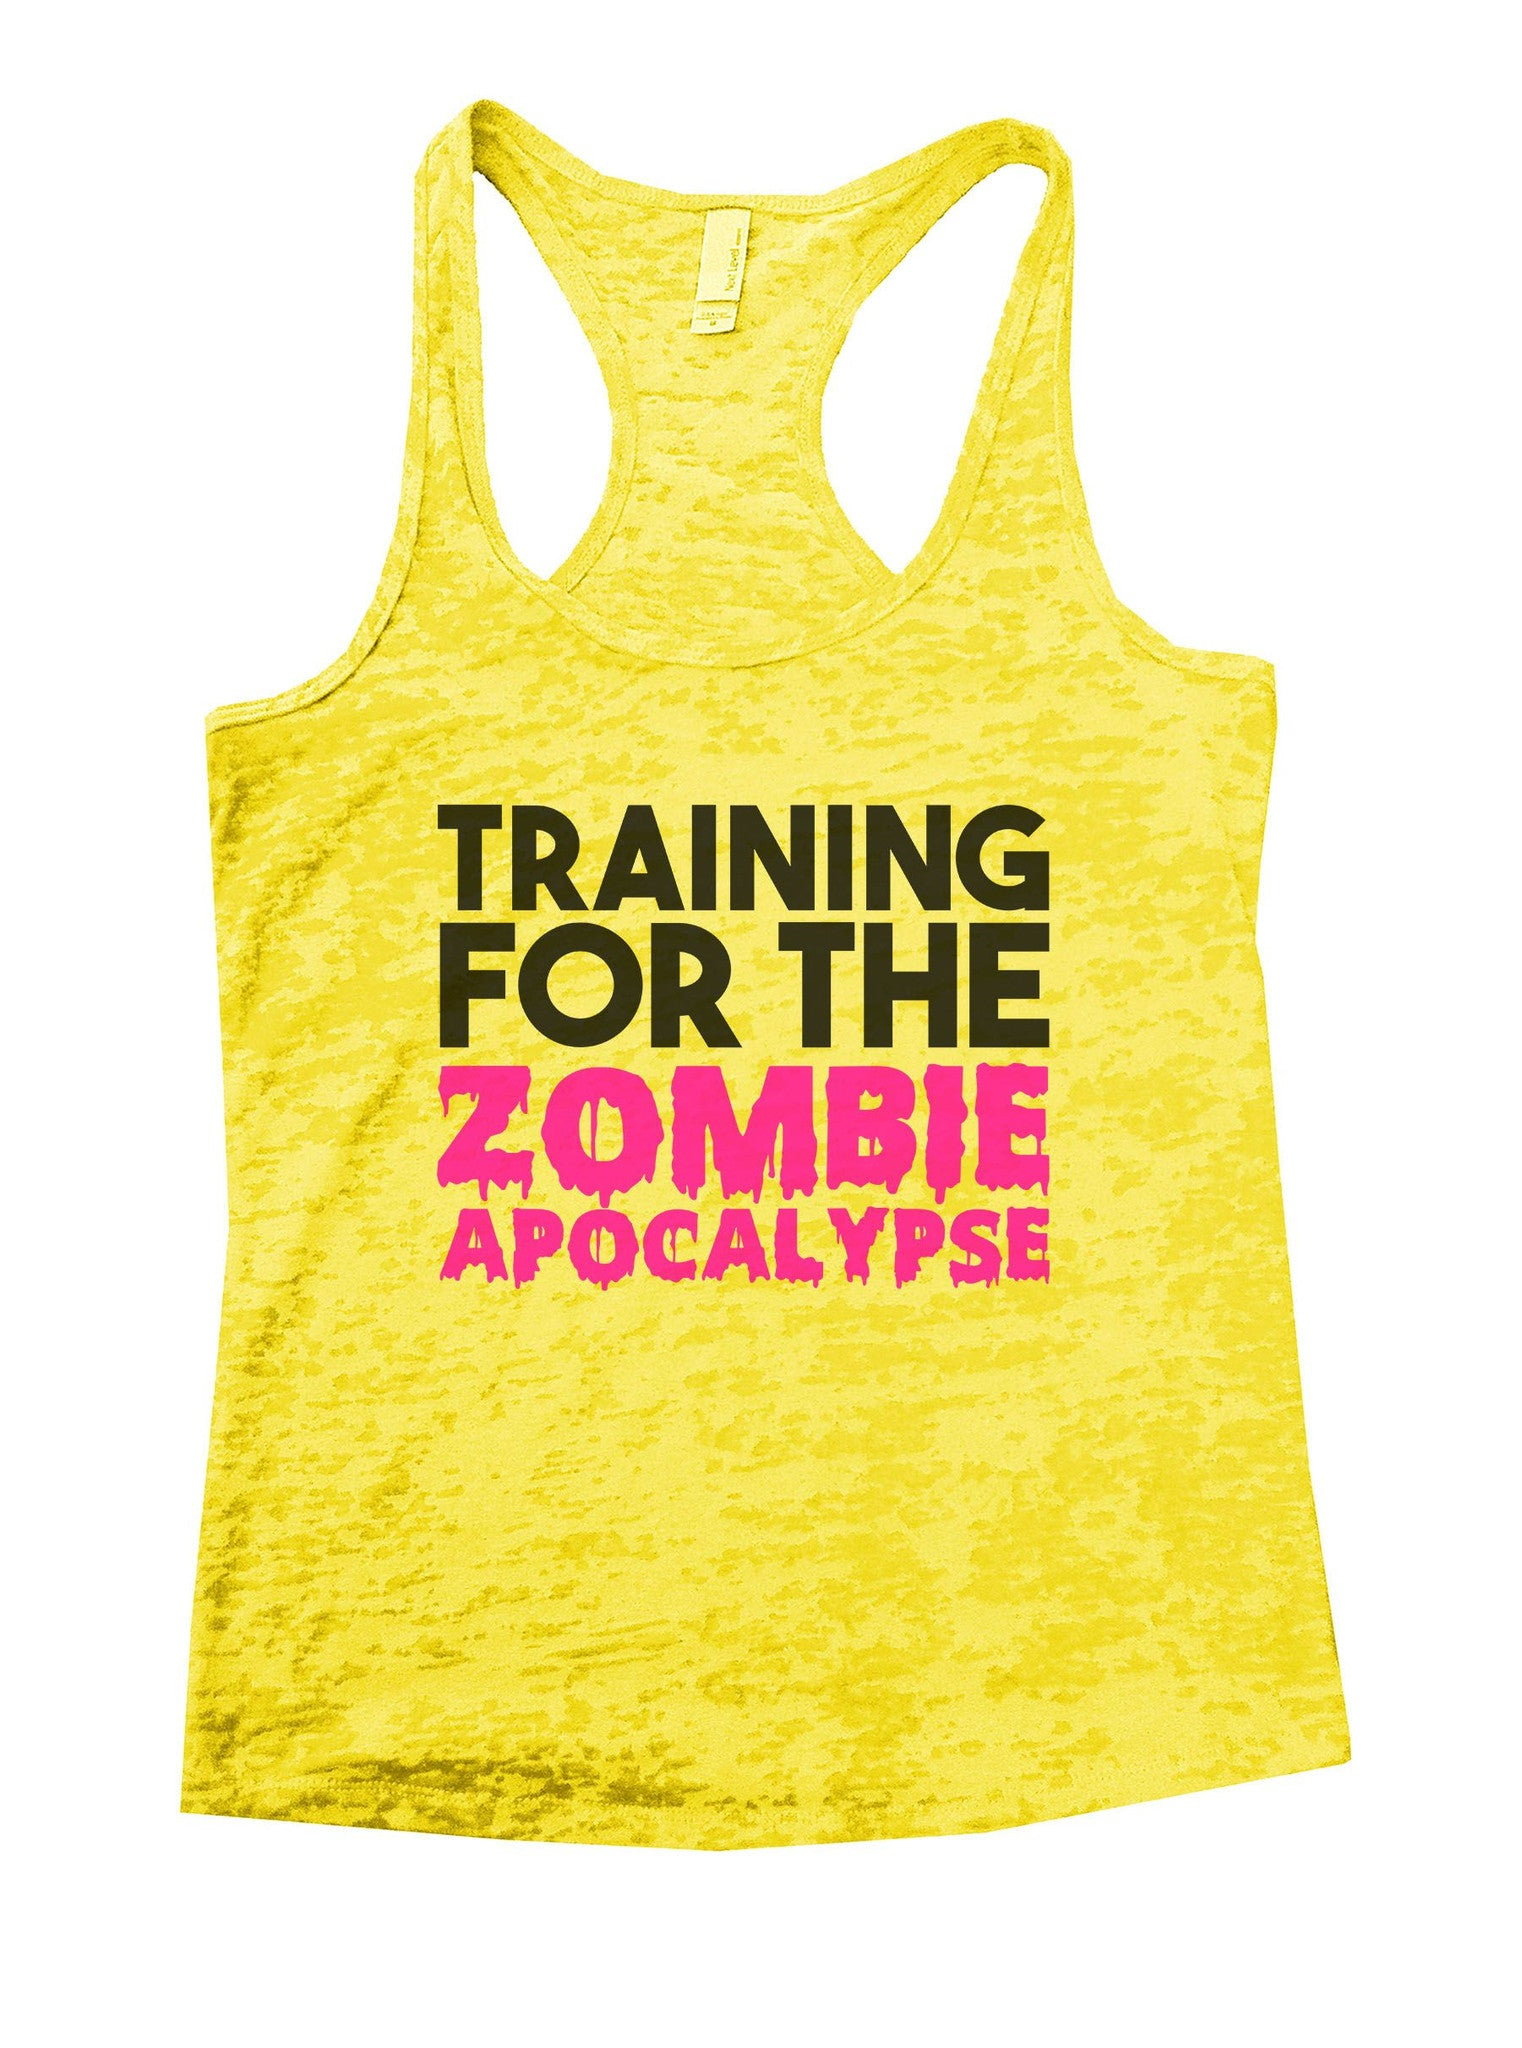 Training For The Zombie Apocalypse Burnout Tank Top By BurnoutTankTops.com - 873 - Funny Shirts Tank Tops Burnouts and Triblends  - 6